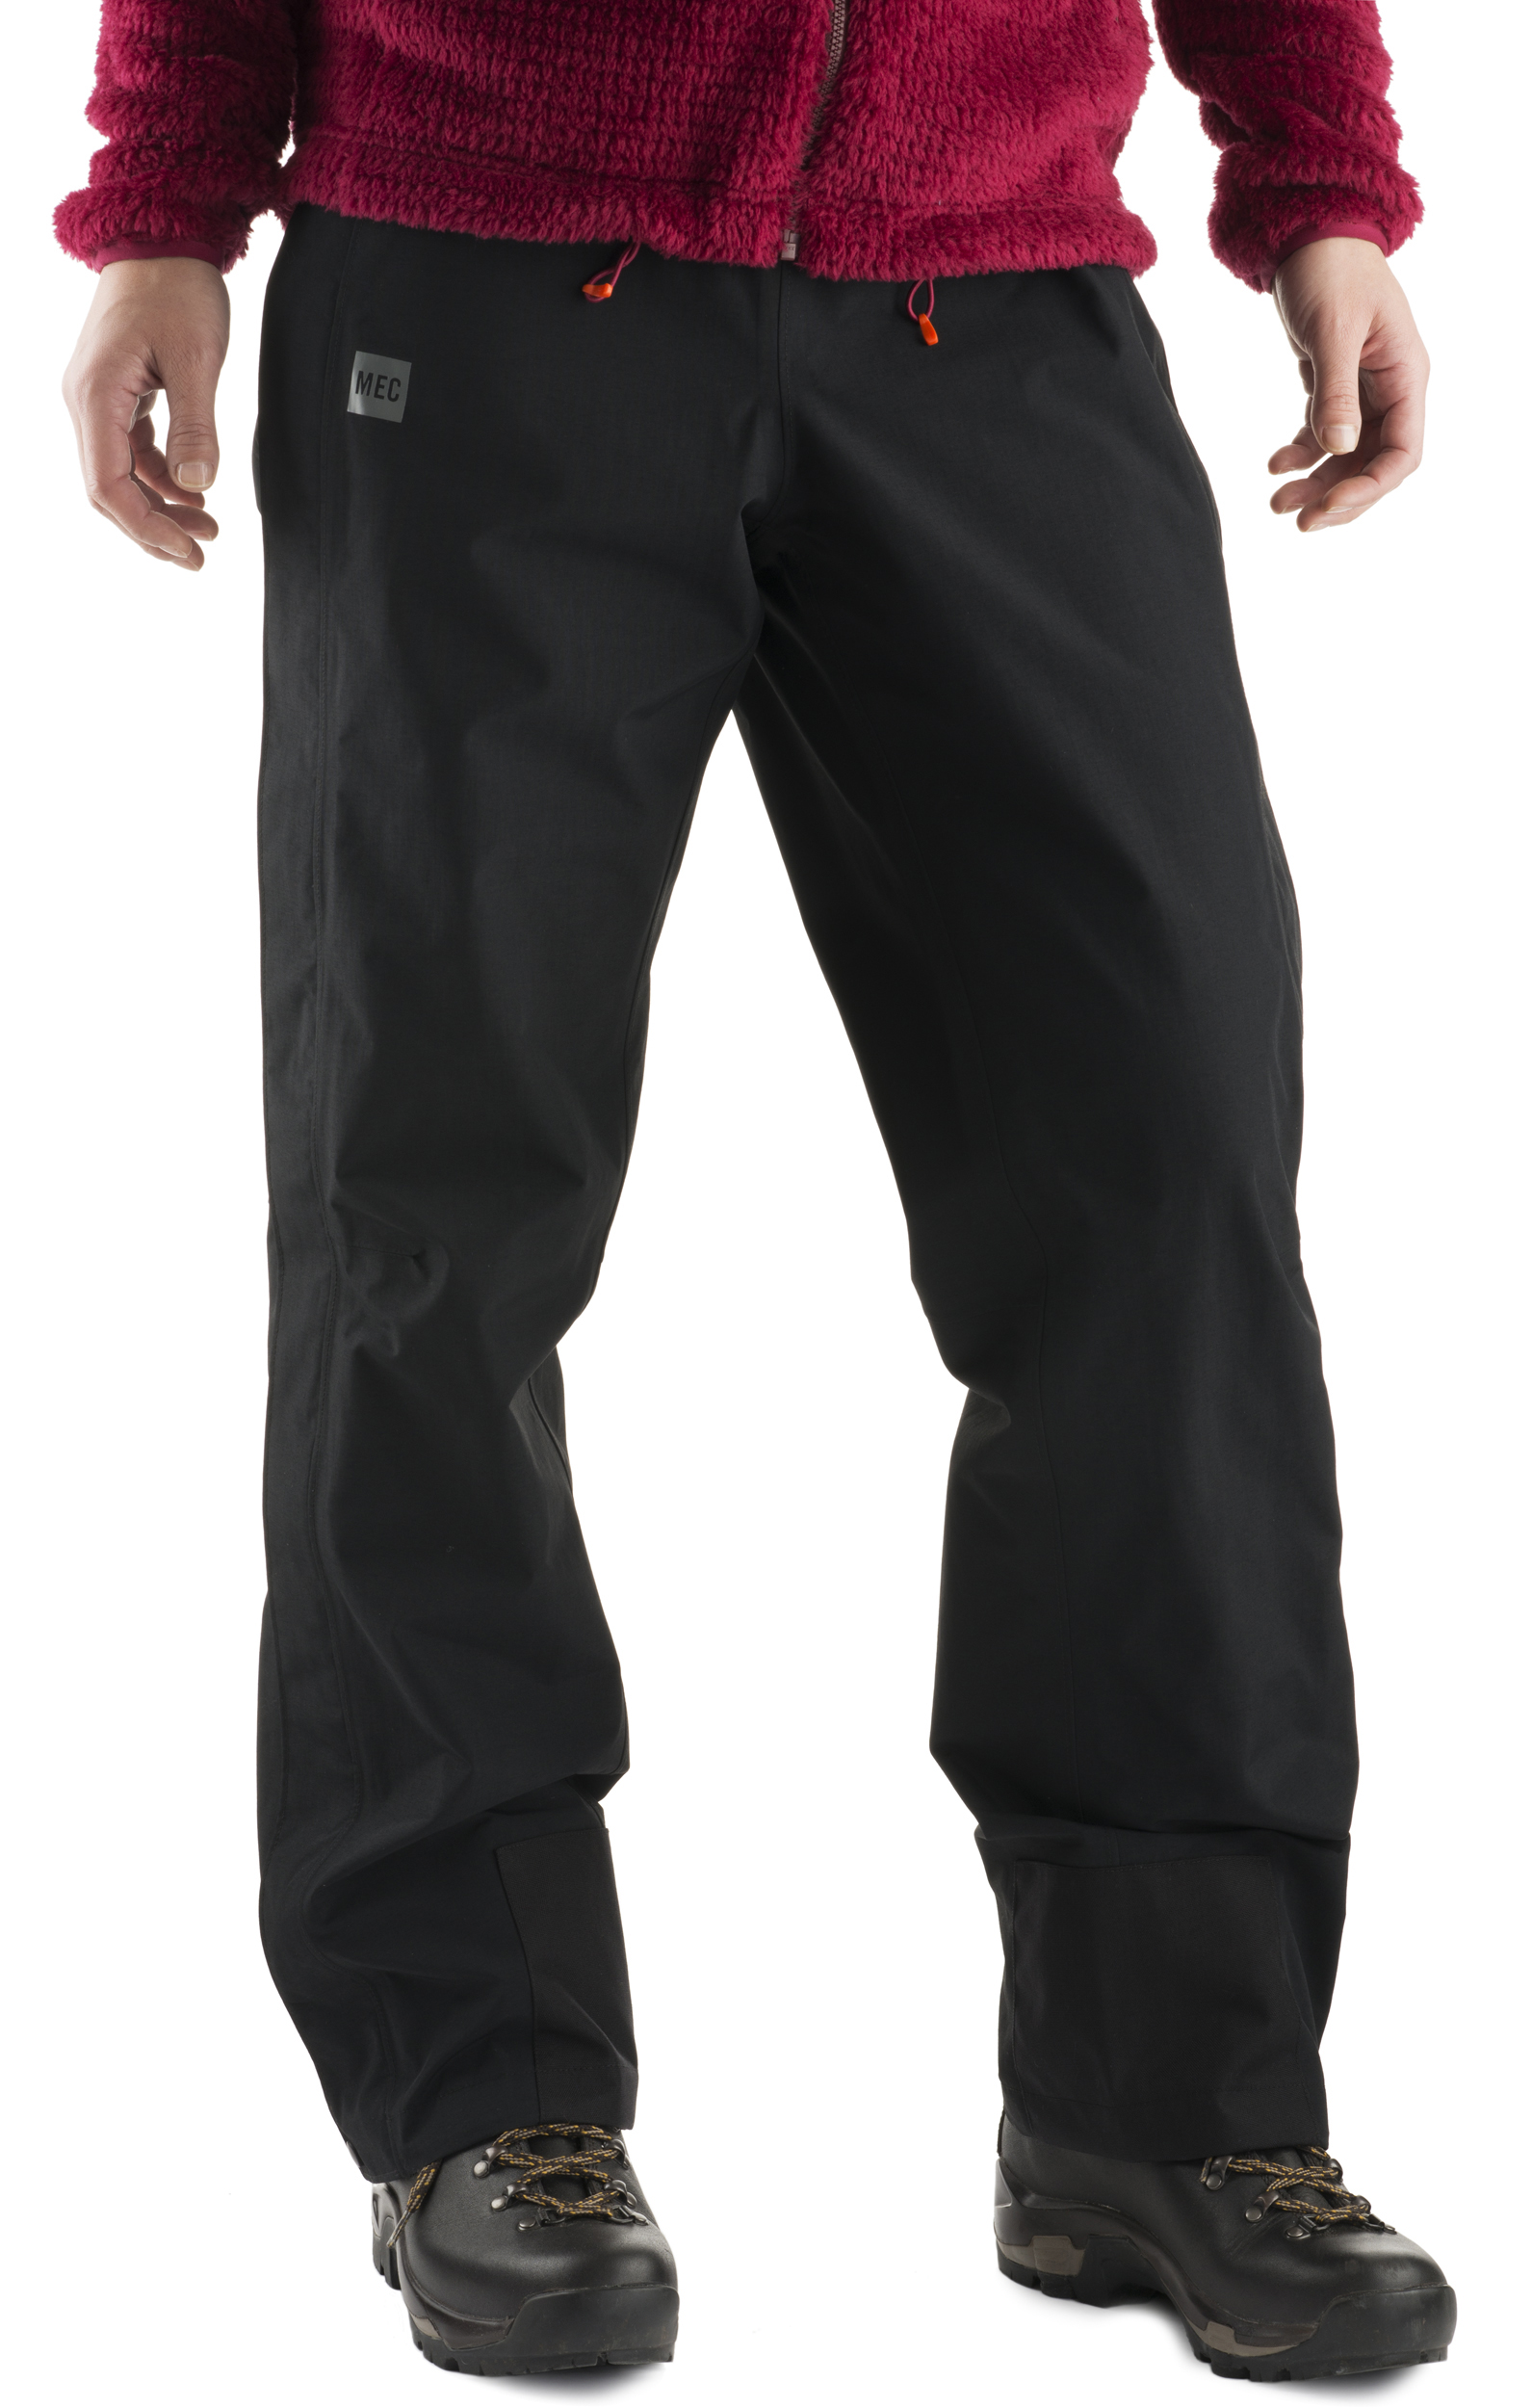 Typhoon pants typhoon pants black KRIBZOG